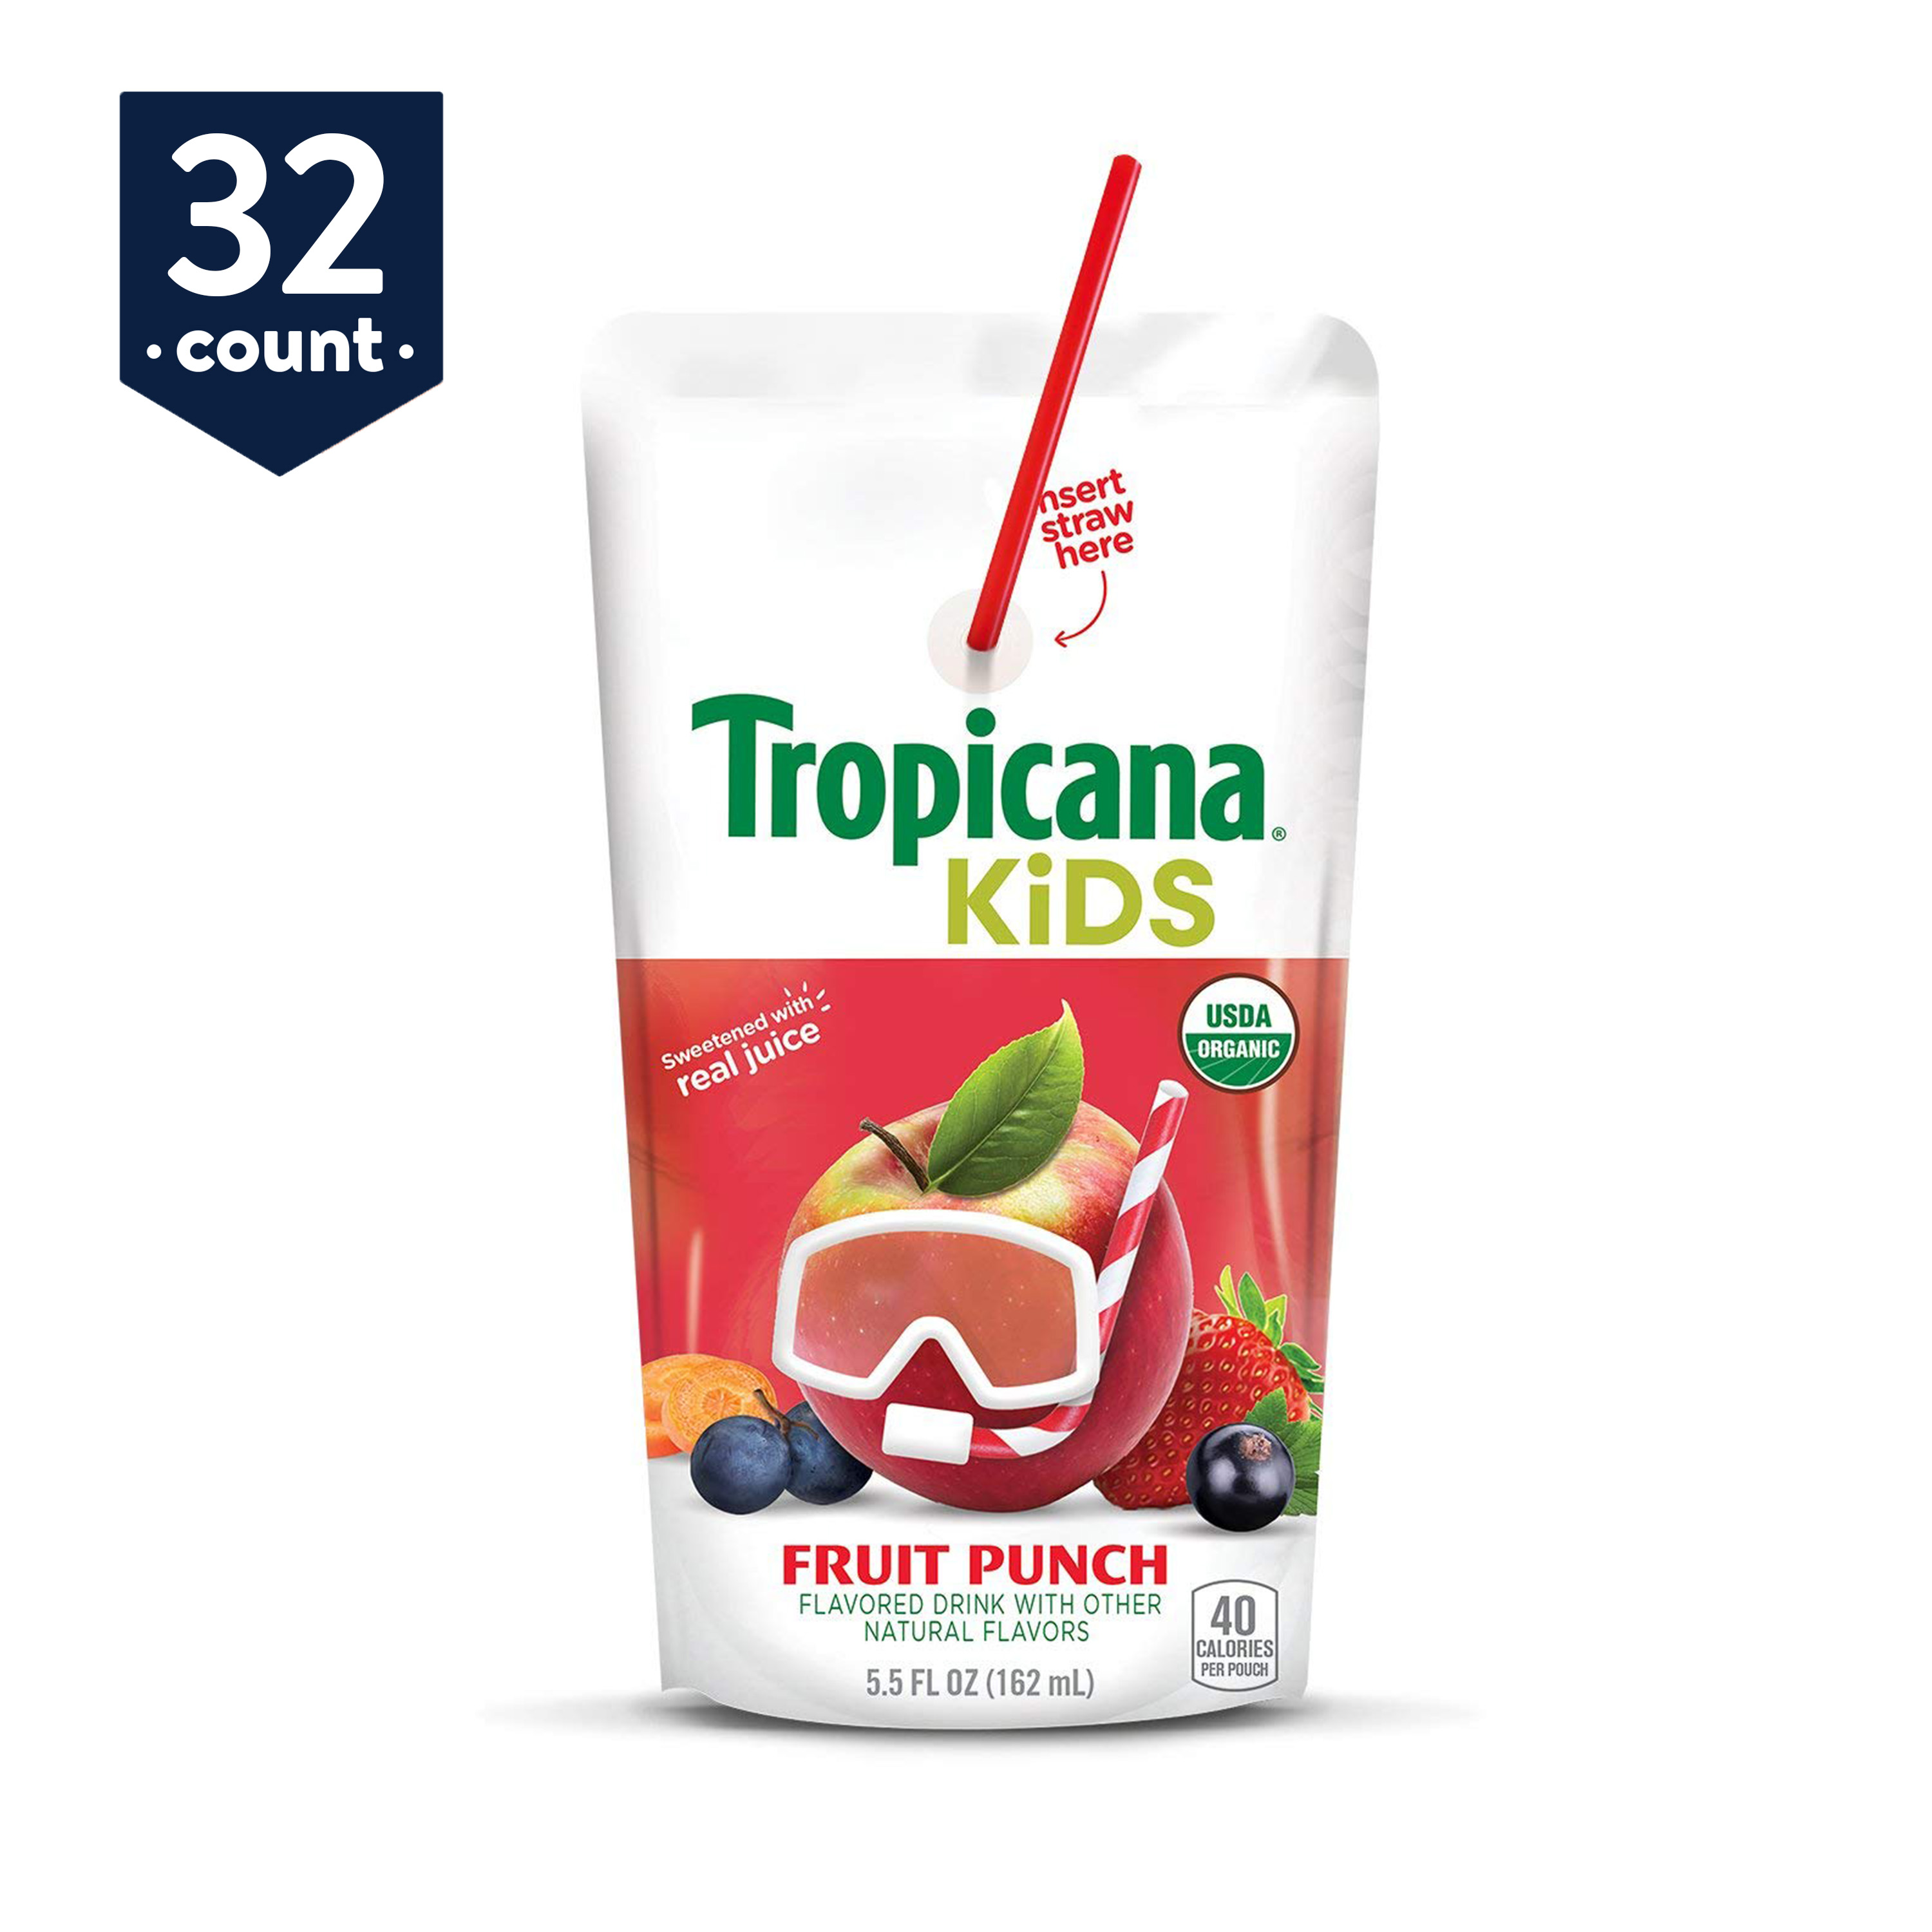 Tropicana Kids Organic Juice Drink Pouch, Fruit Punch, 5.5 oz Pouches, 32 Count